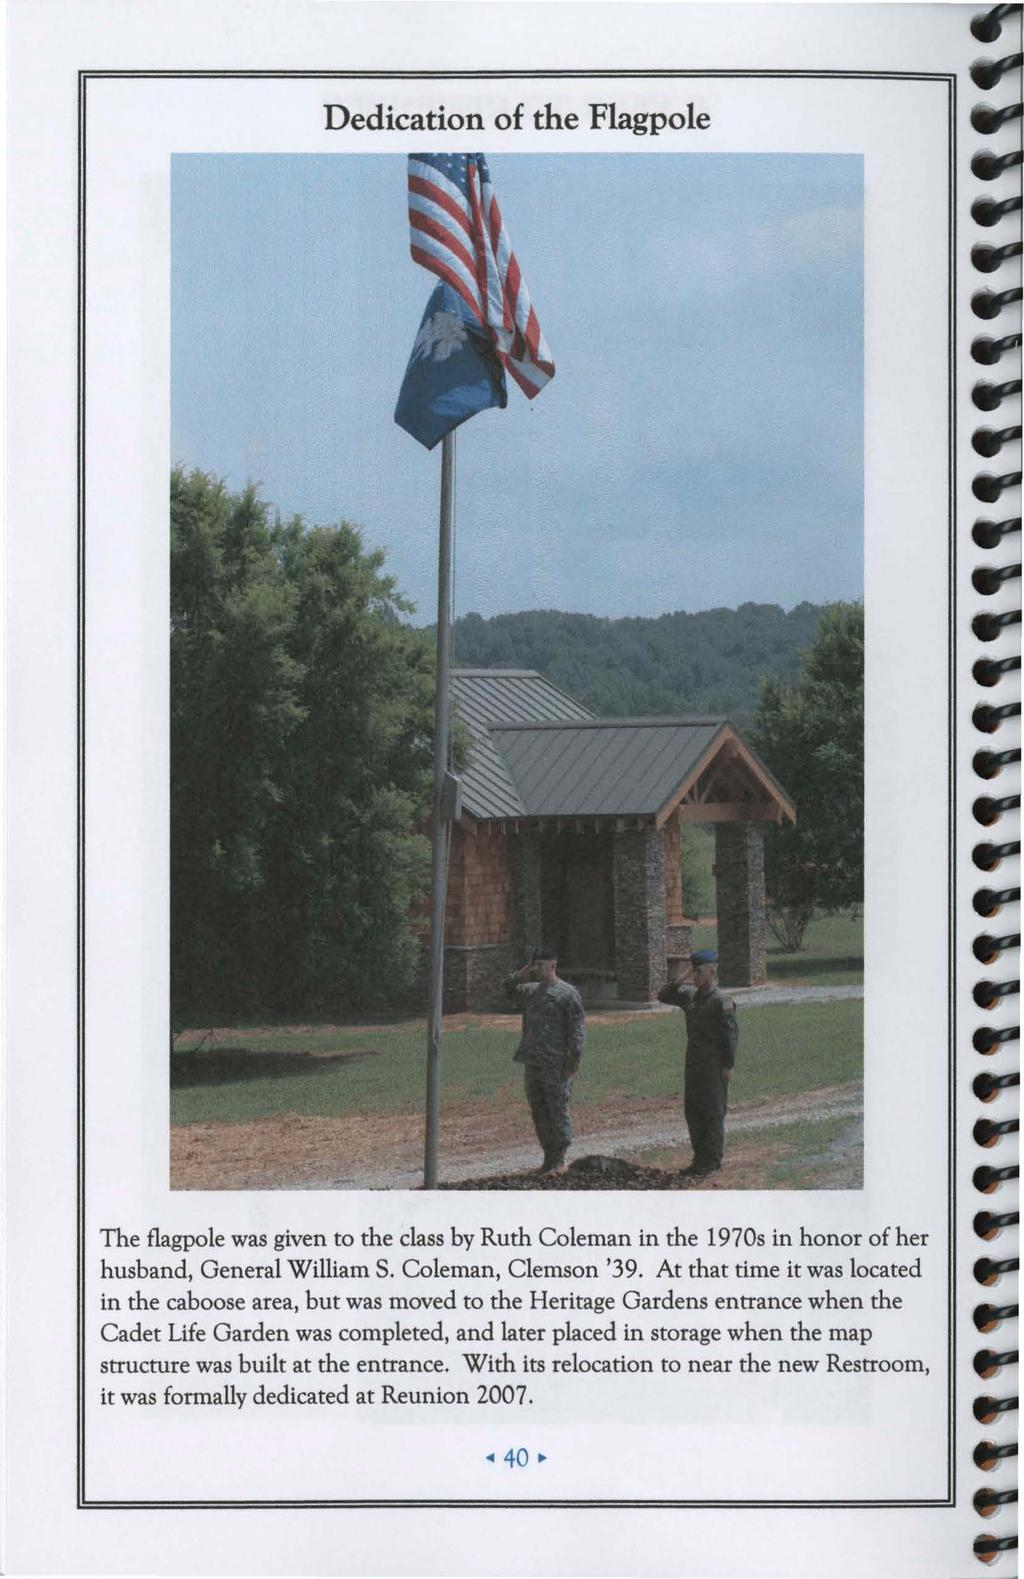 Clemson Am College Class Of 1939 Reunion Program Pdf 2366b Wiring Diagram Coleman Dedication The Flagpole Was Given To By Ruth In